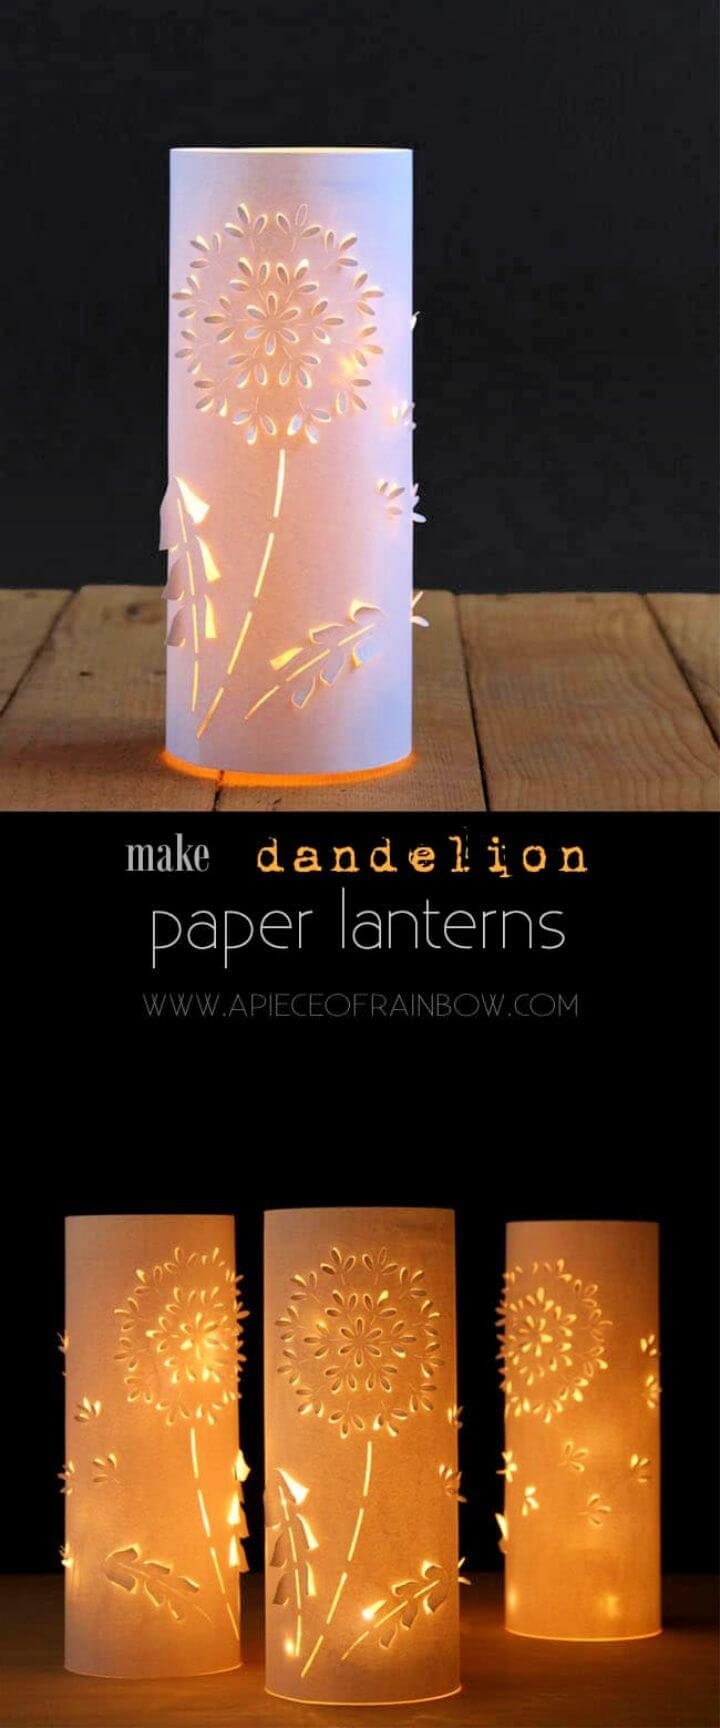 Make Paper Lanterns Inspired by Dandelions